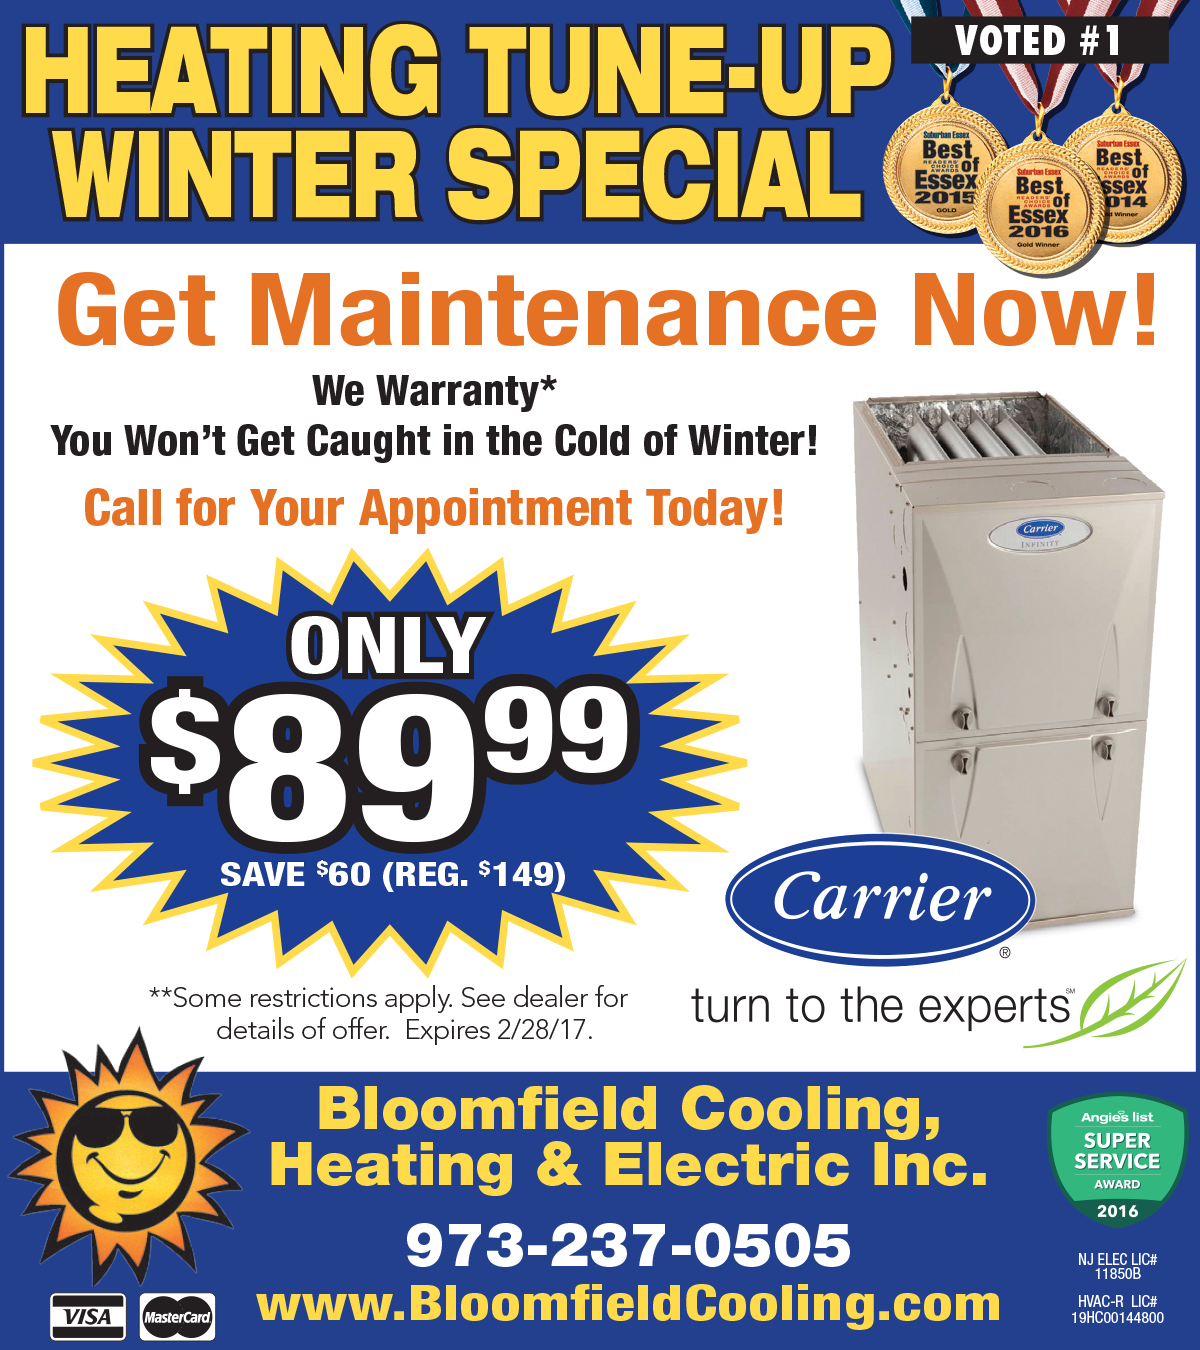 Heating Tune-up Special - Bloomfield Cooling